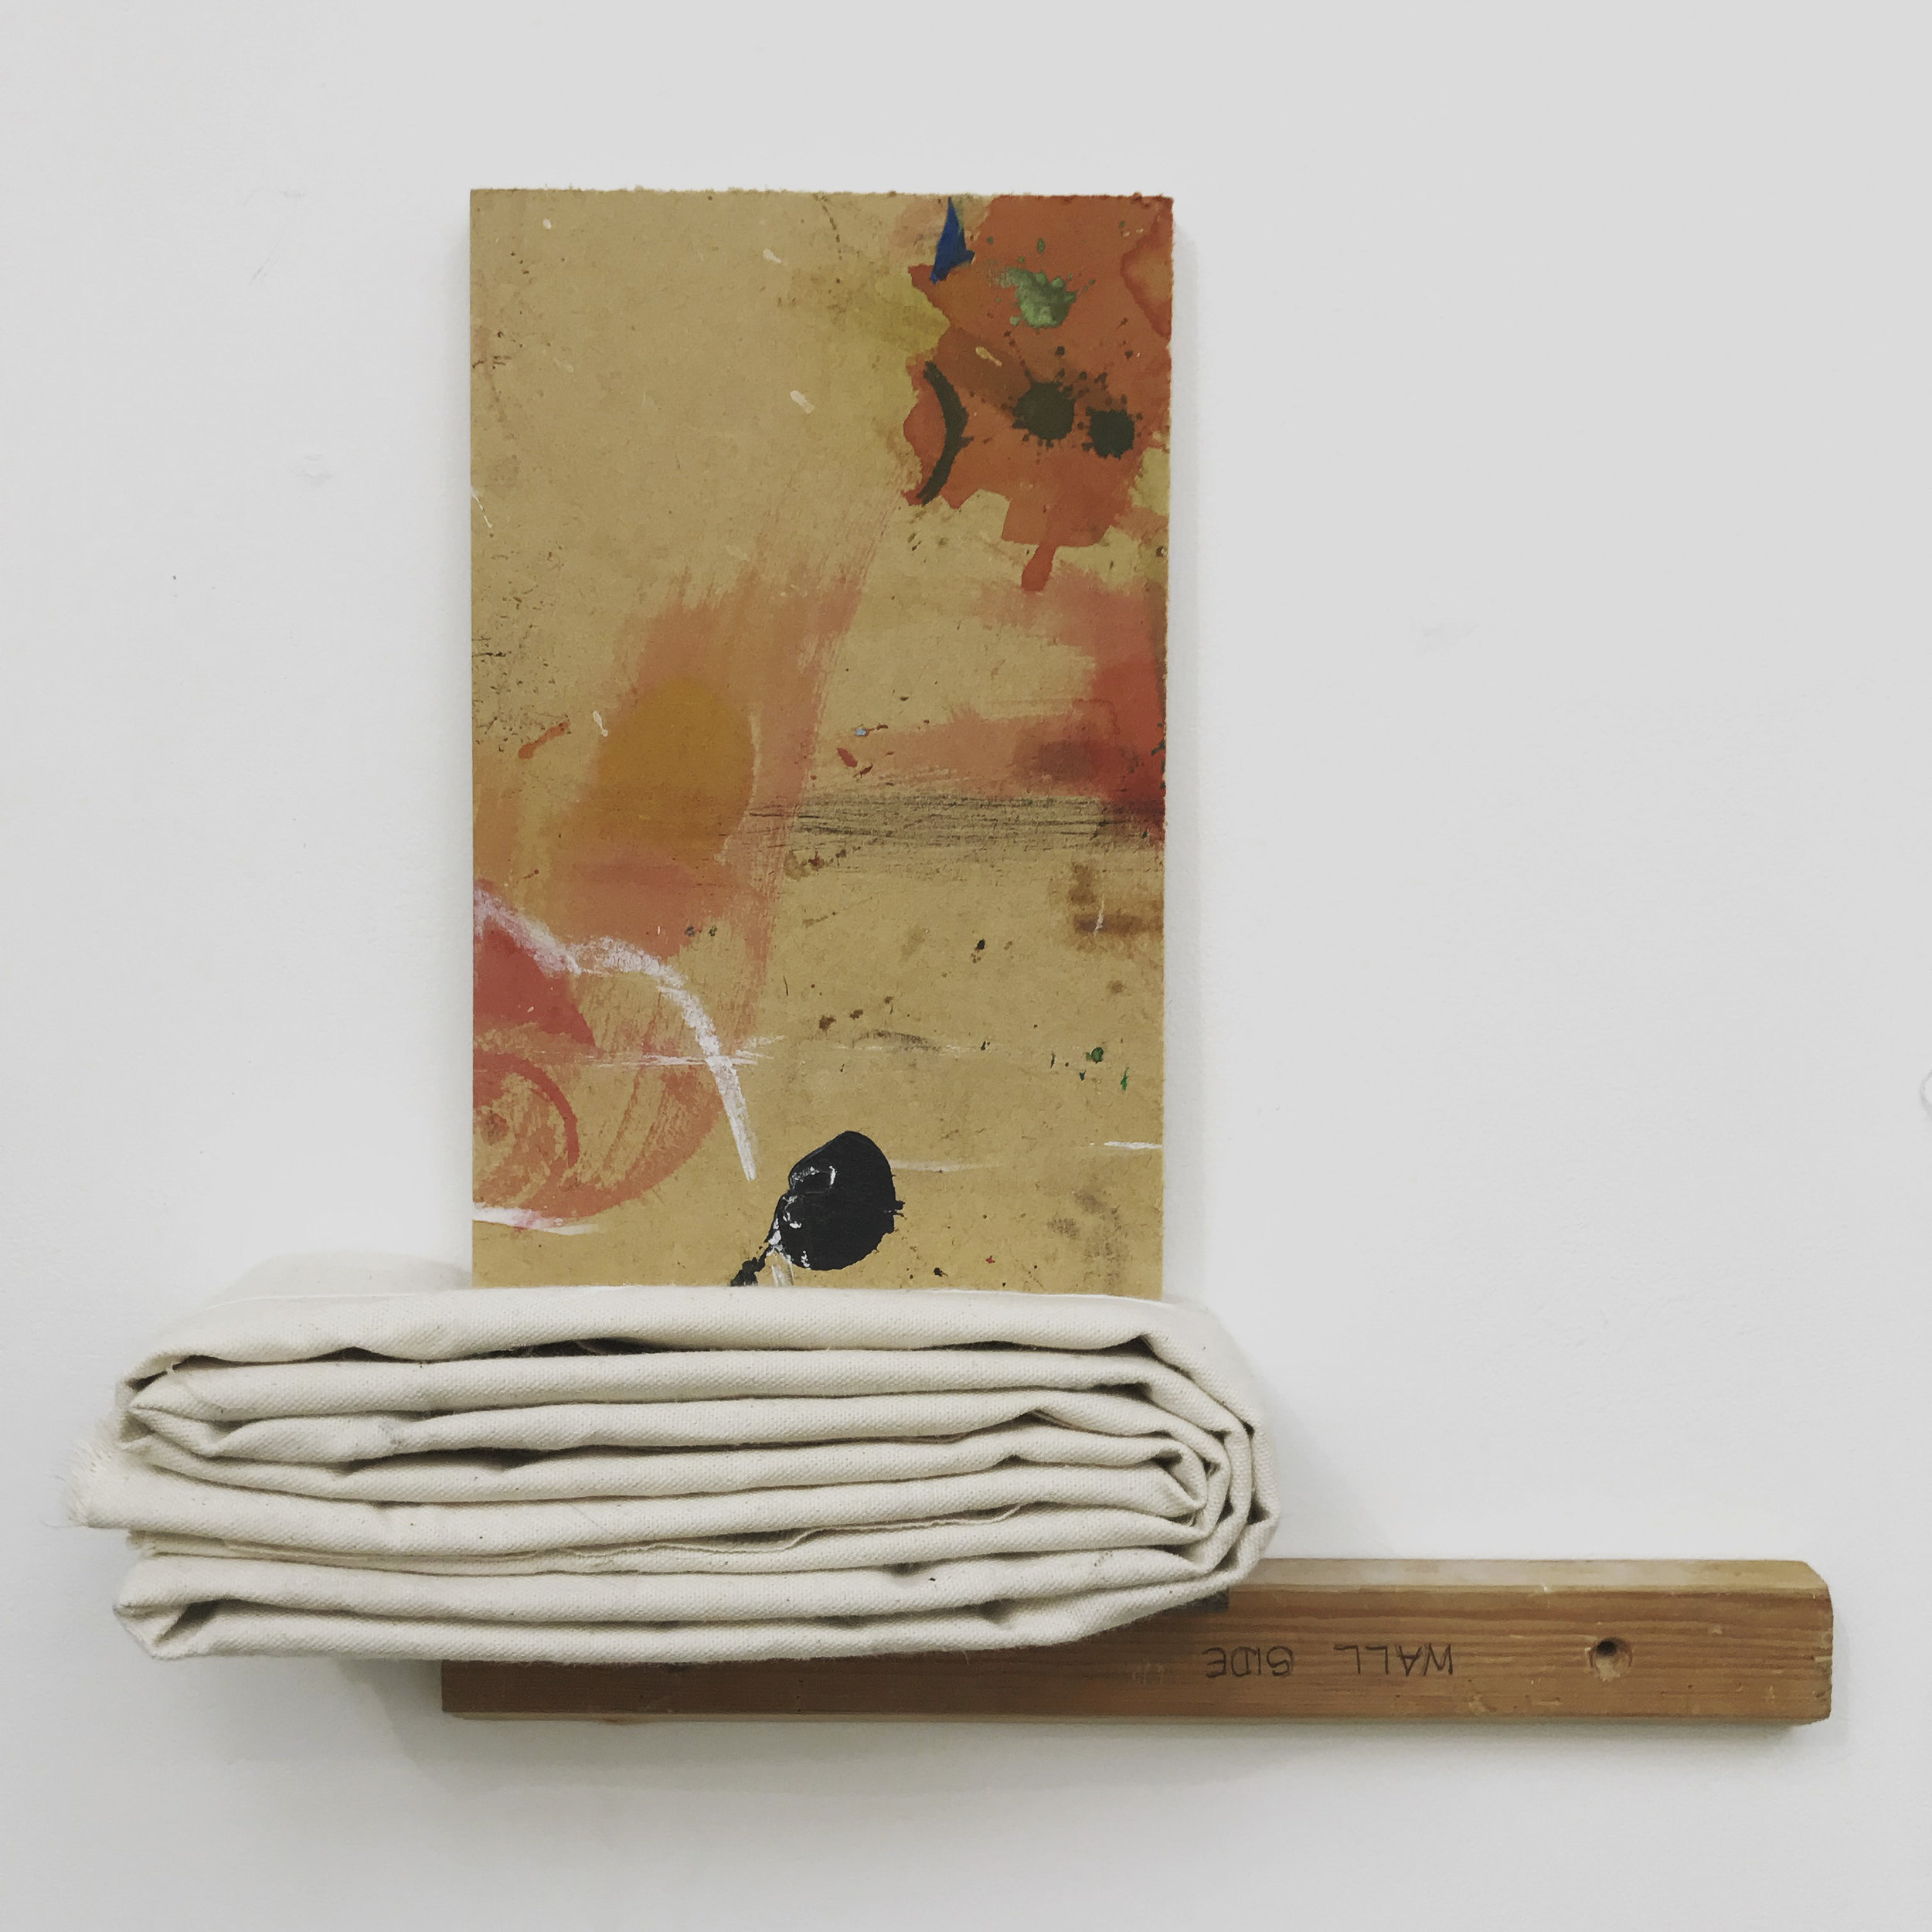 Current Works - A few of the works made while on residency at Bath Artists Studios : October '18 - July '19The Functional Object in Painting.The Re-Presentation of Artefact.The (Re)Signification of Value.The Dialogue in Space.Exploring the space between.Image and Object.Incident and Intent.Audience and Artwork.Definition and Meaning.Painting and Process.